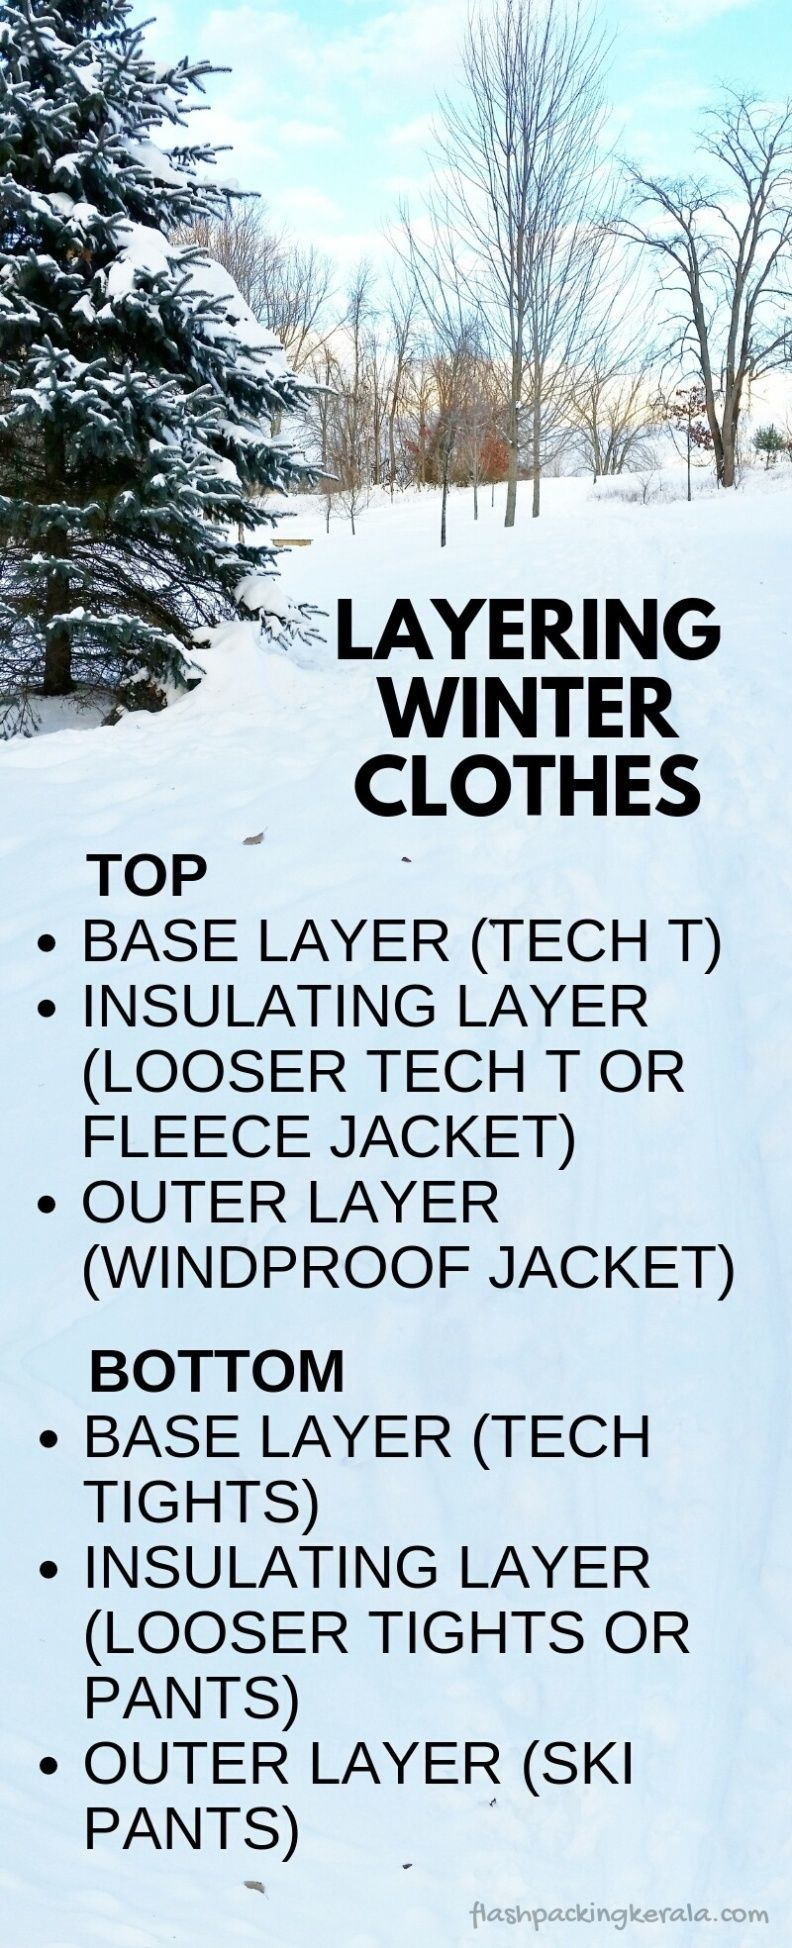 How to layer clothes for cold weather Winter vacation